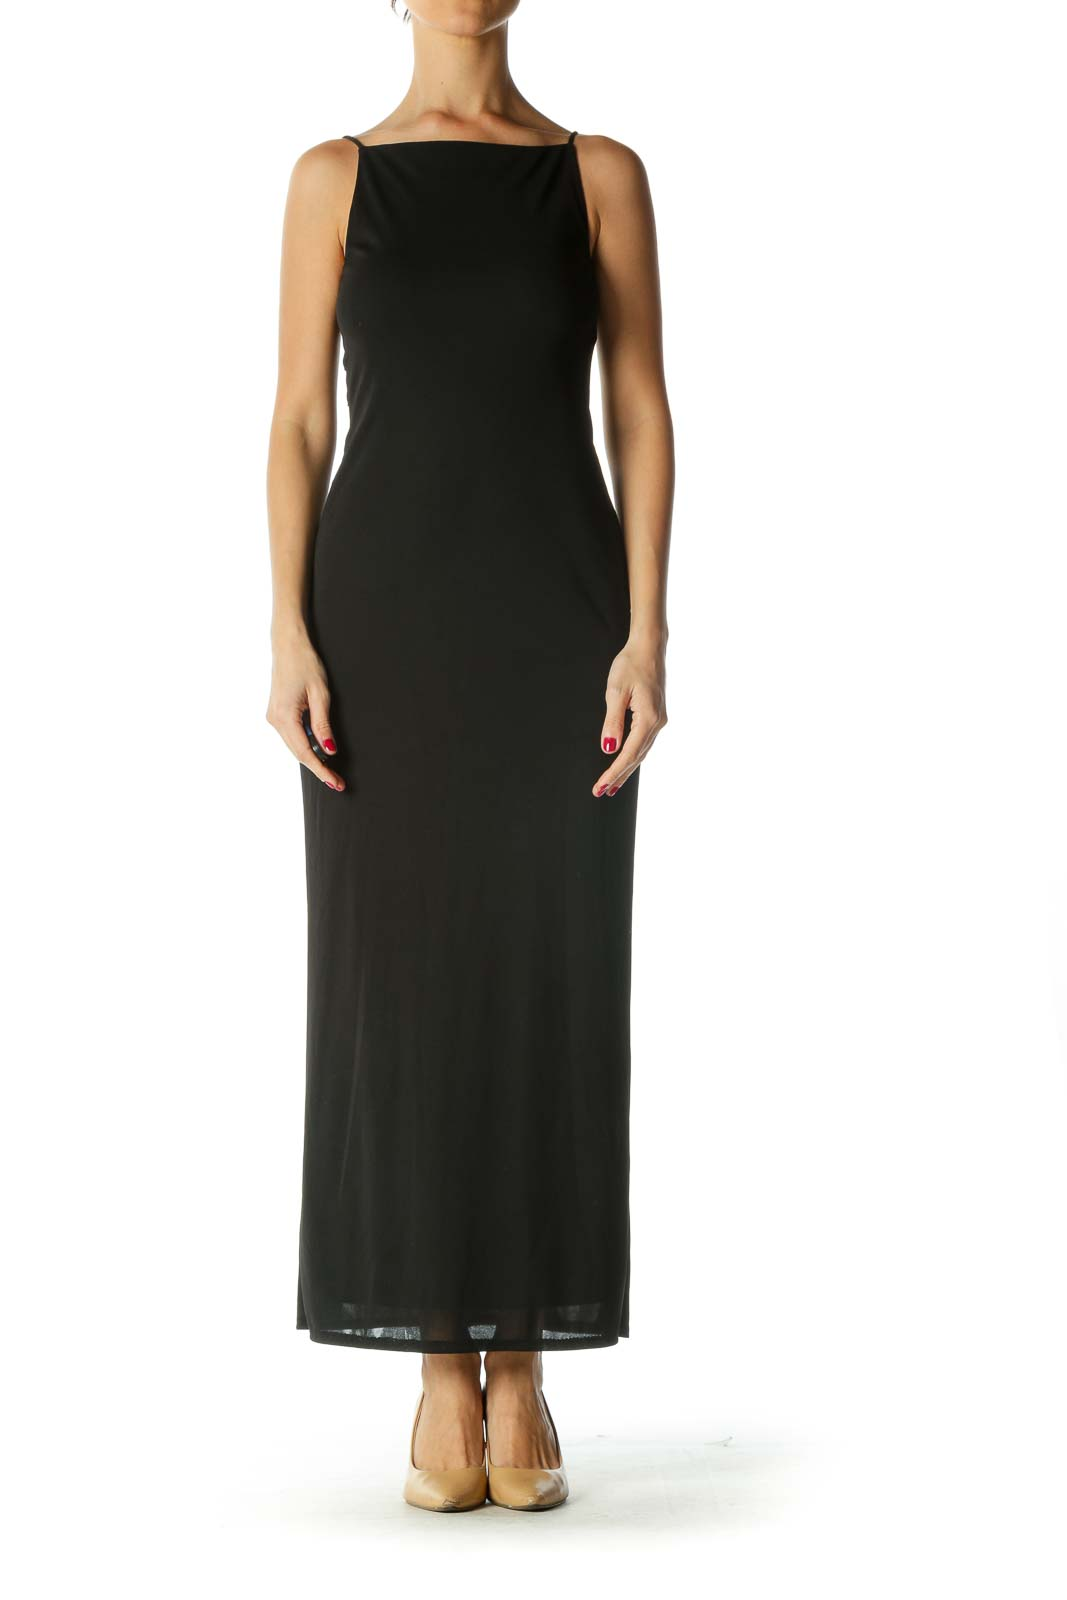 Black Maxi Evening Dress with Back Detail